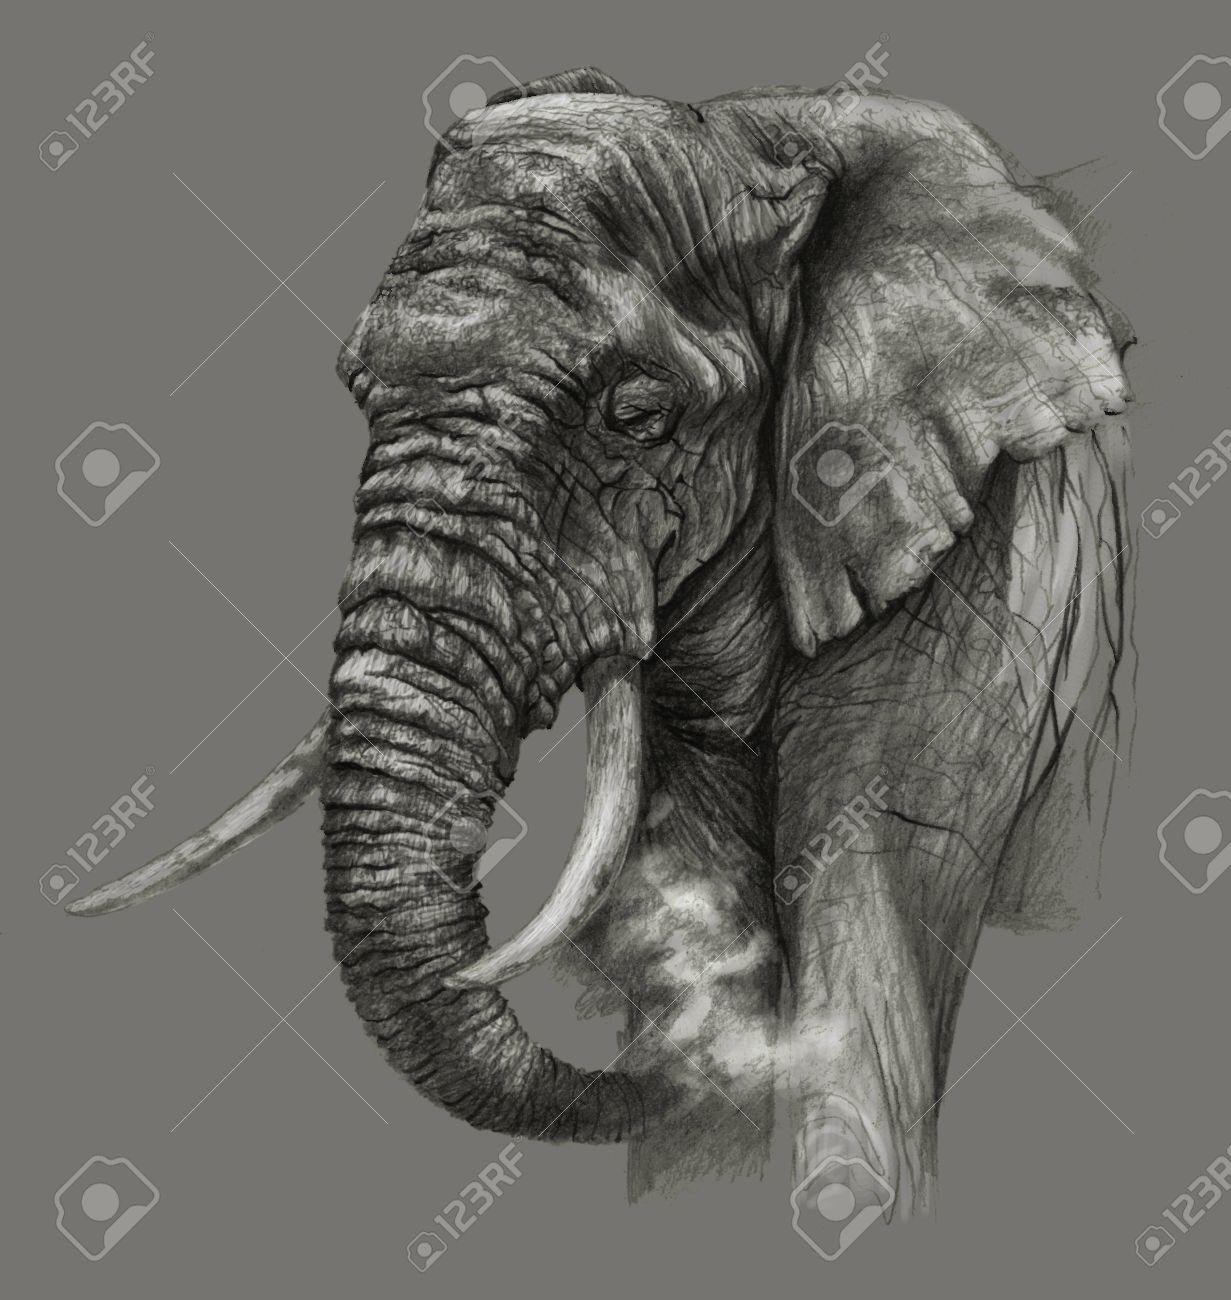 Sketch african elephant on gray background detailed pencil